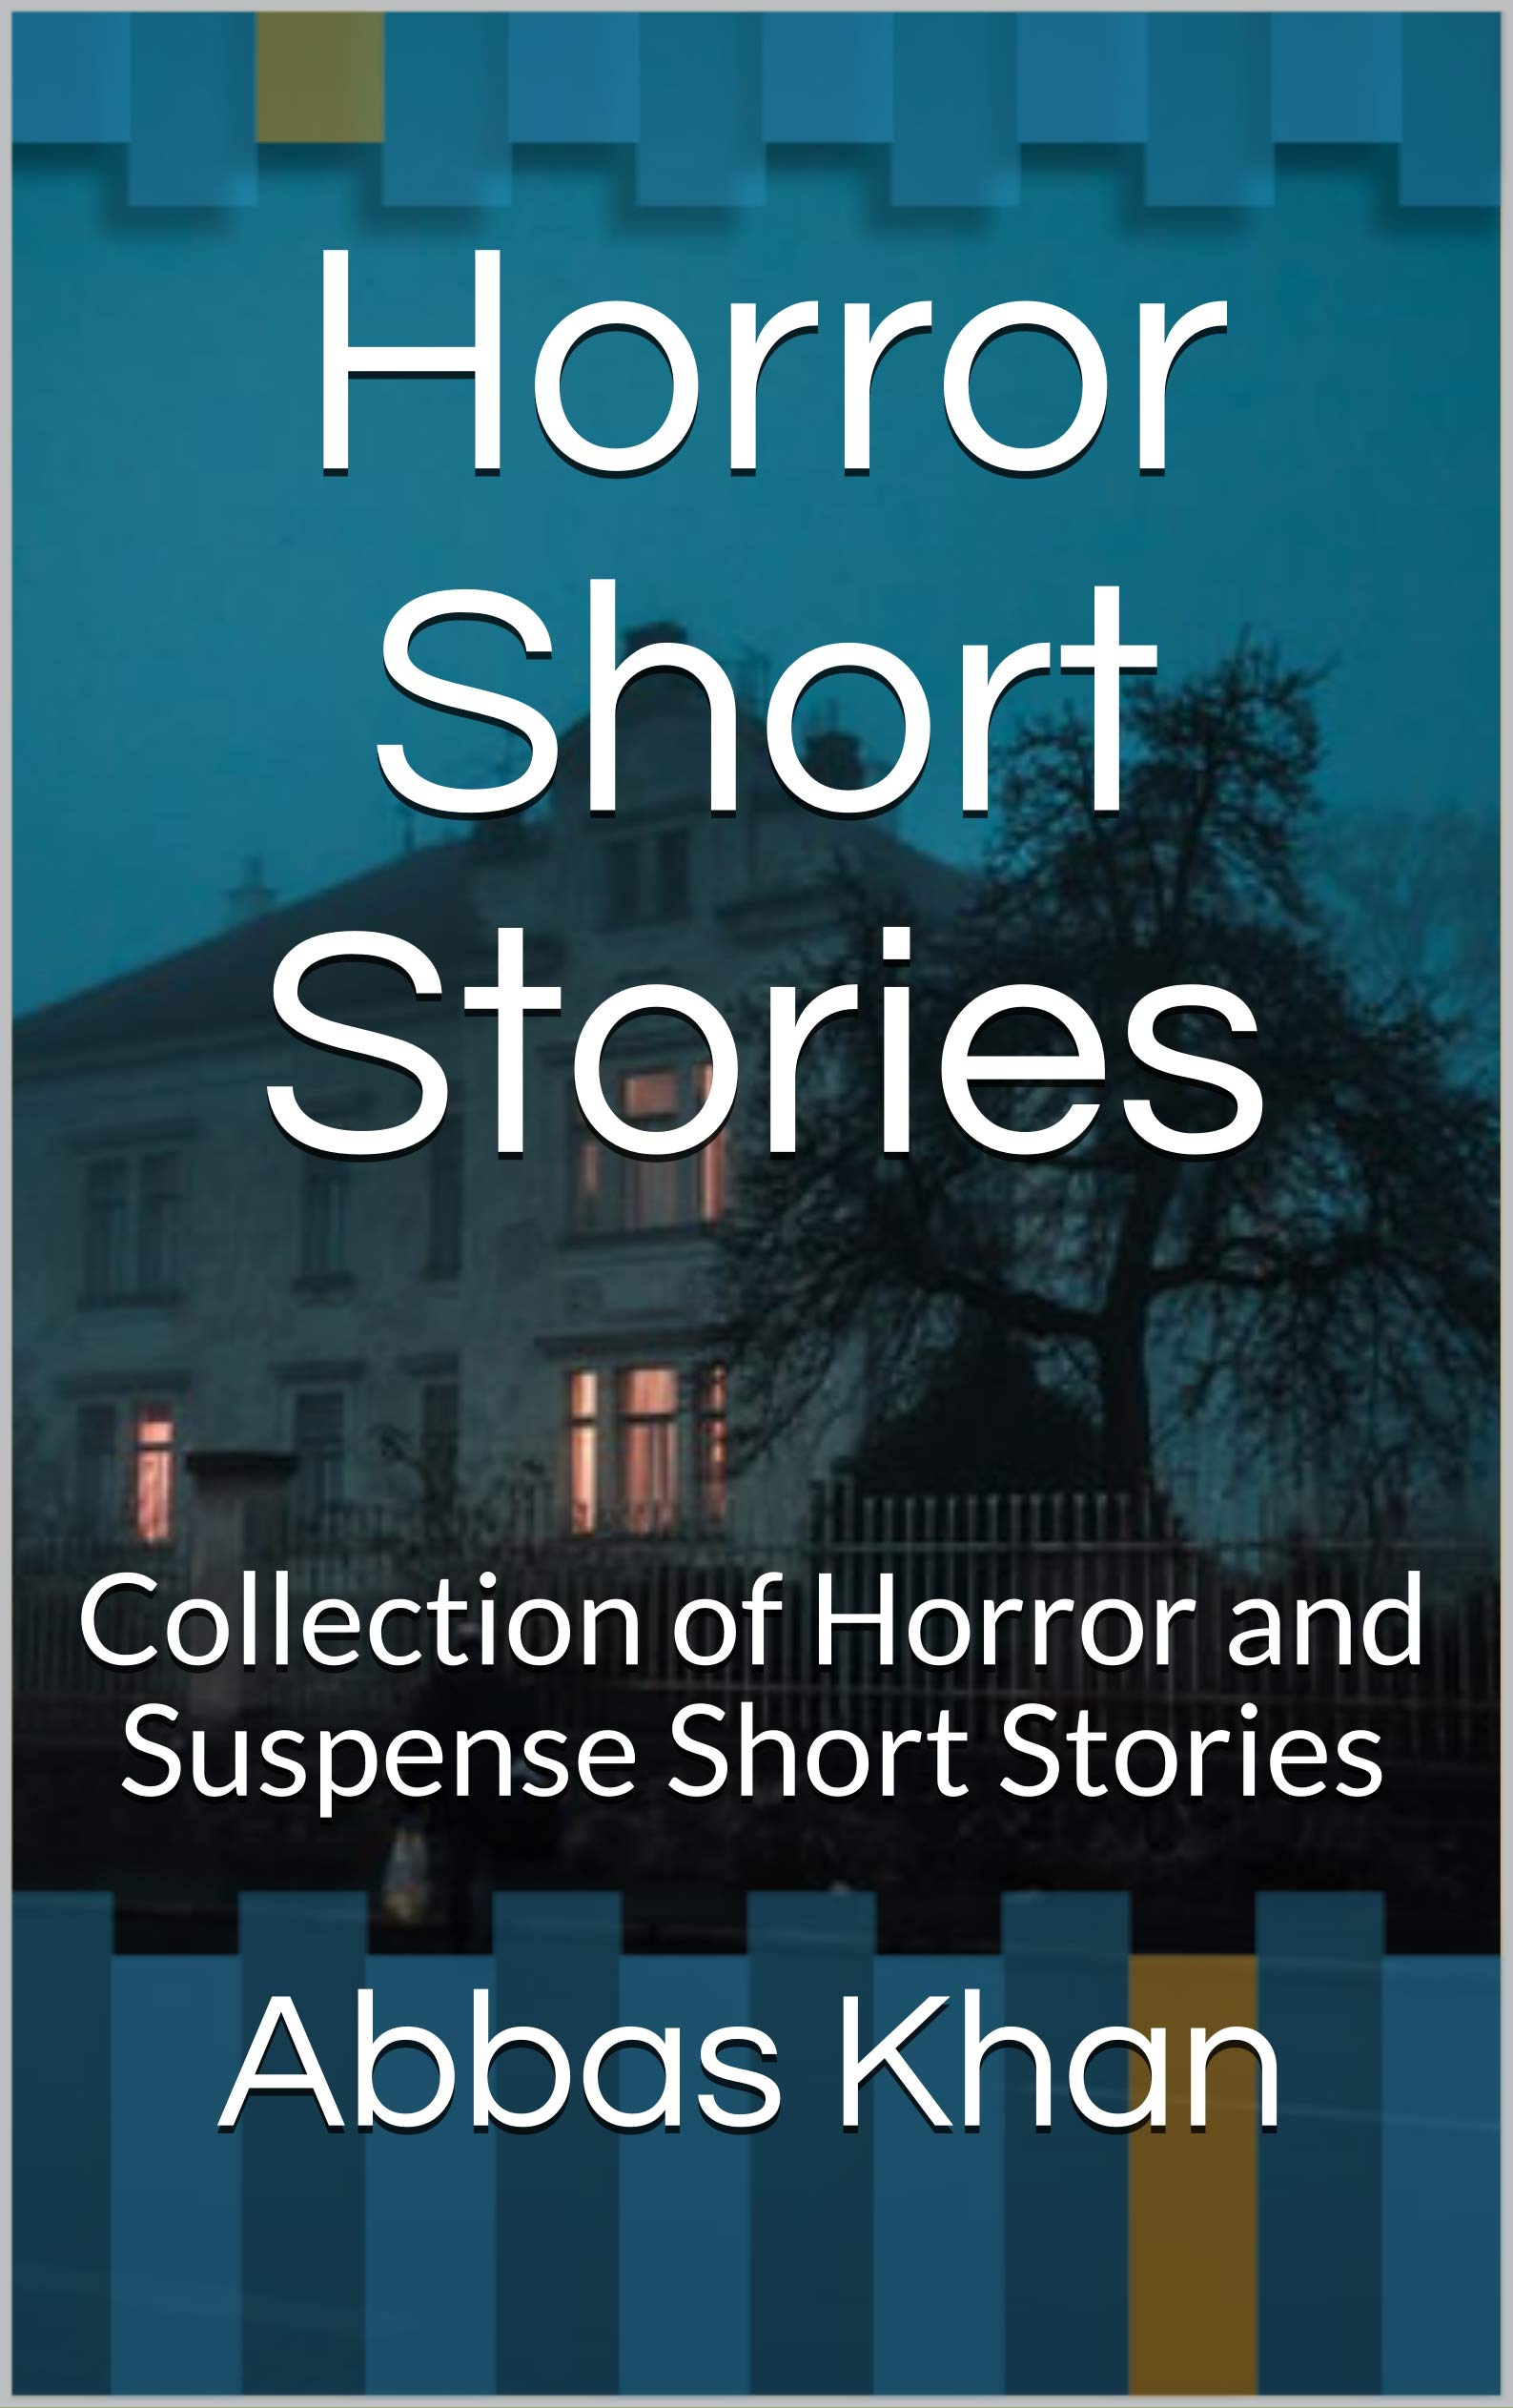 Horror Short Stories: Collection of Horror and Suspense Short Stories